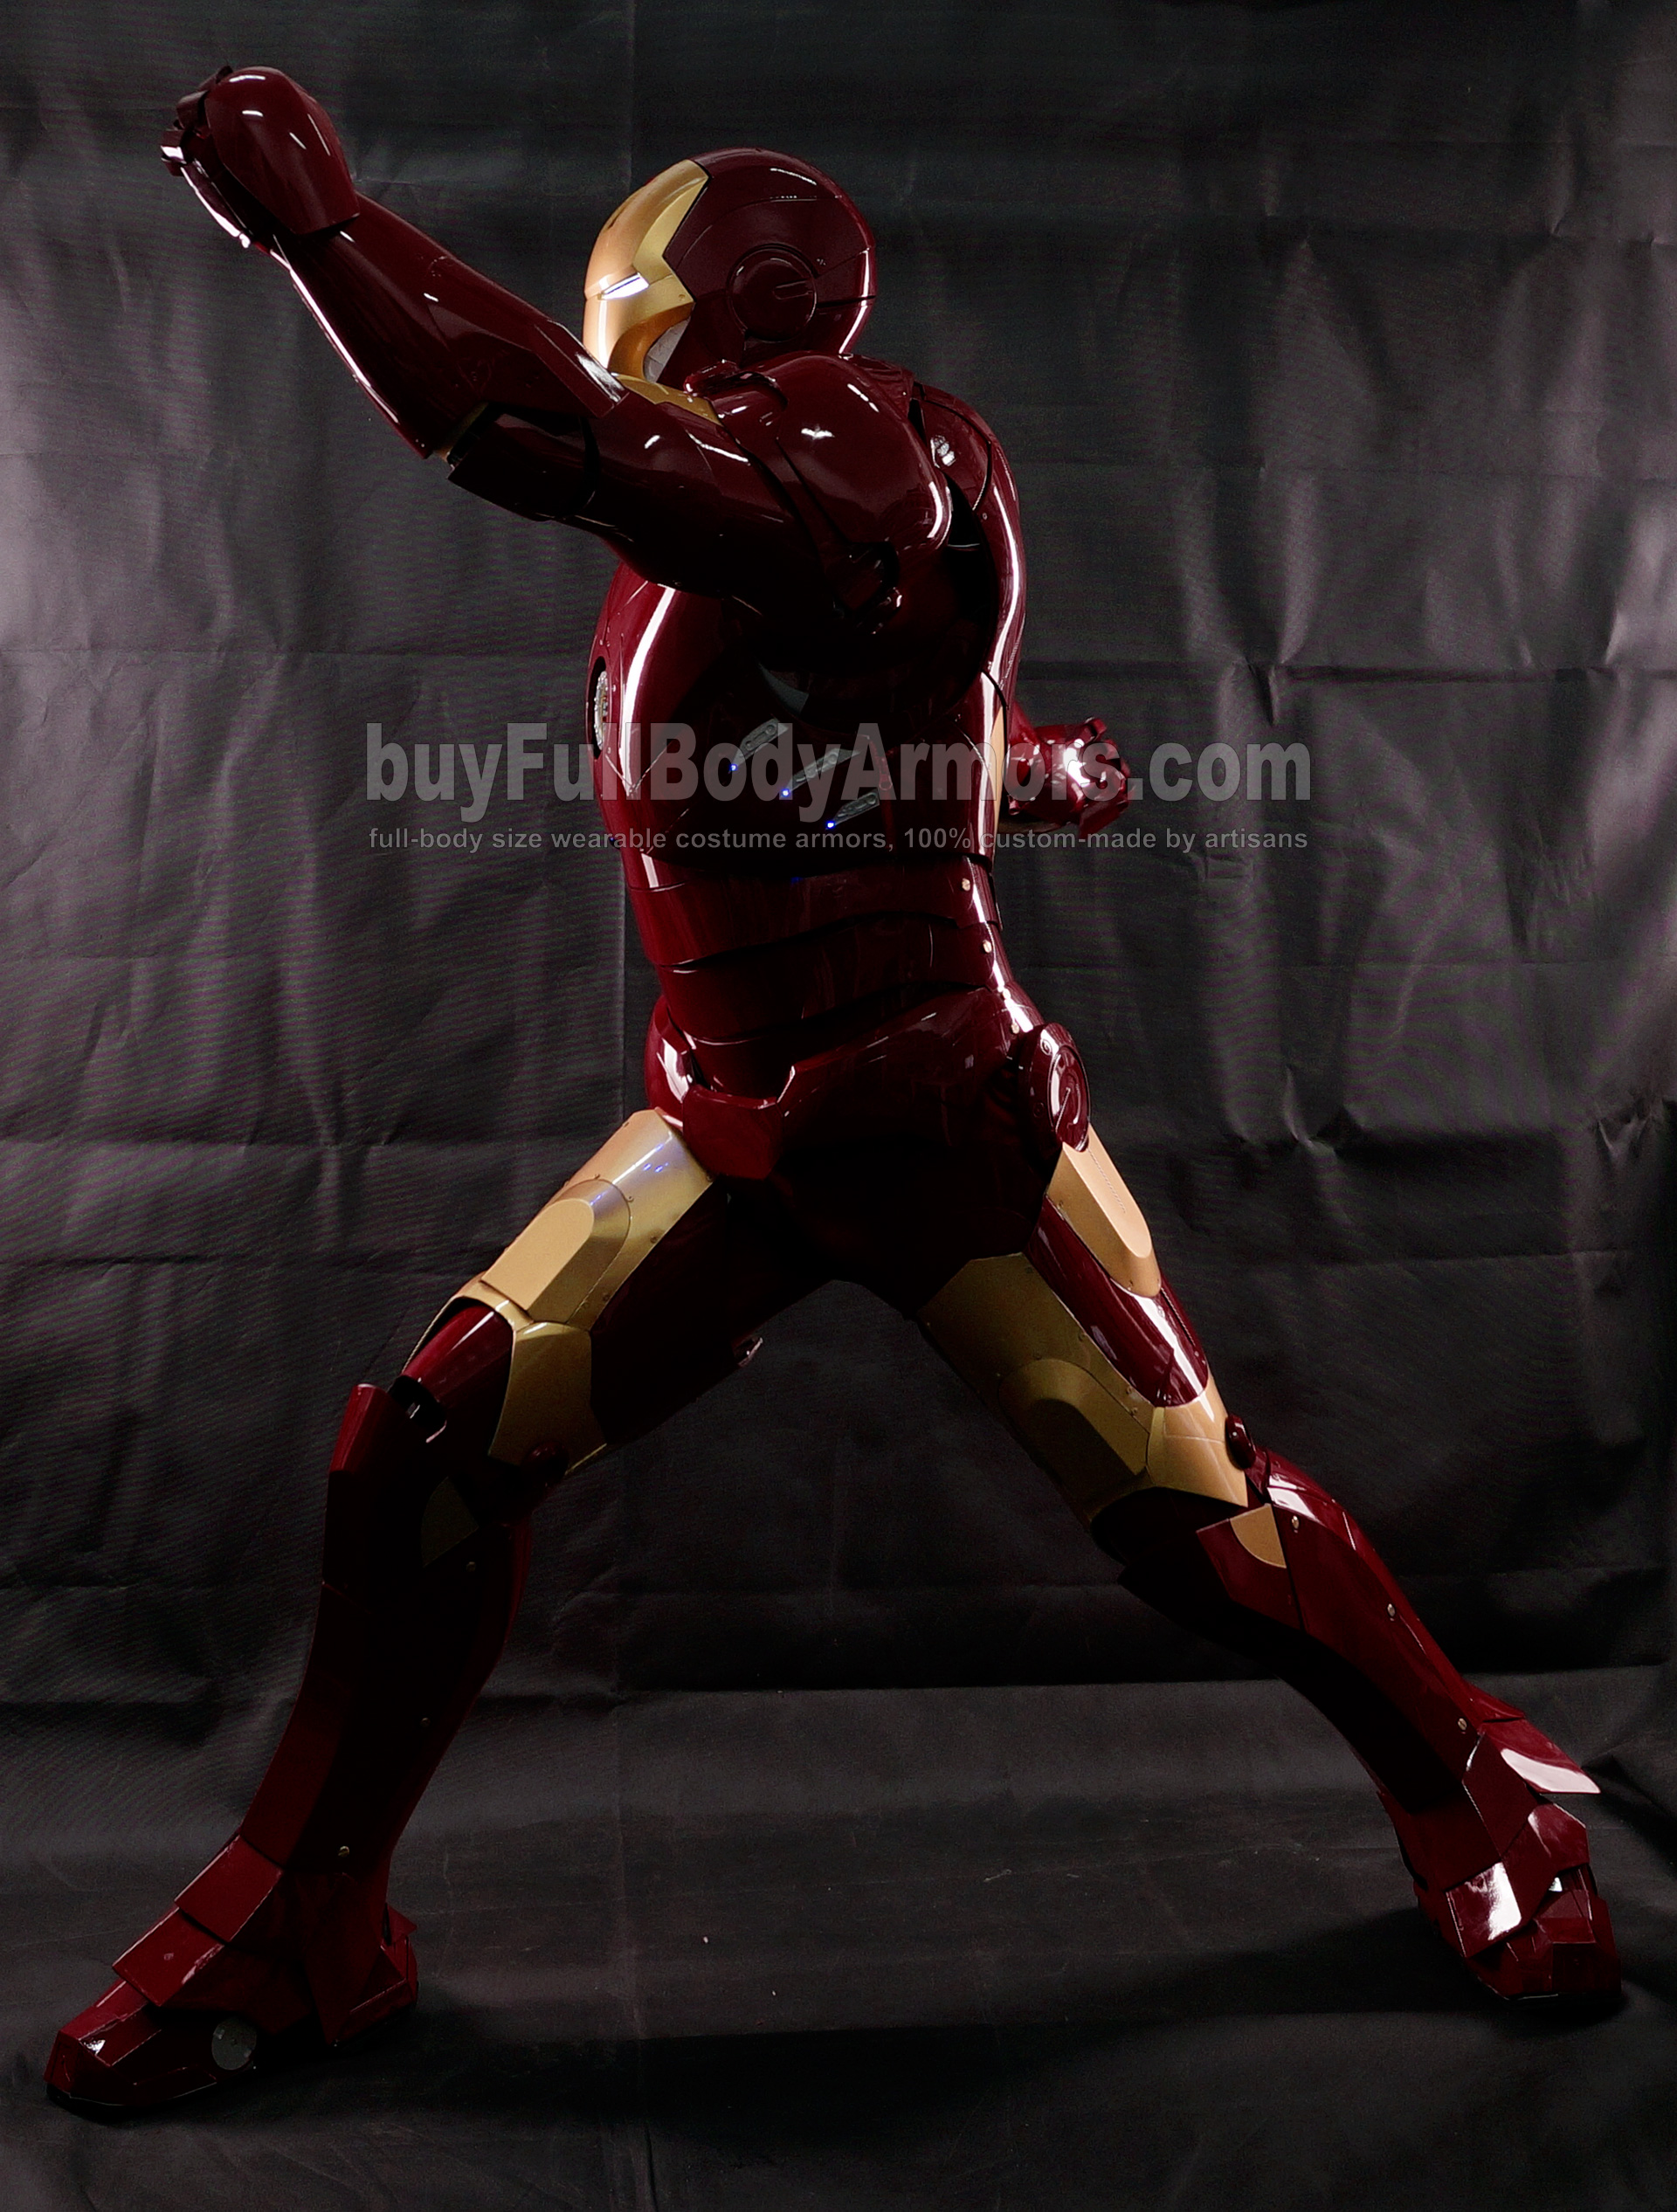 High Definition Photos of the Wearable Iron Man Mark 3 III Armor Costume Suit 5